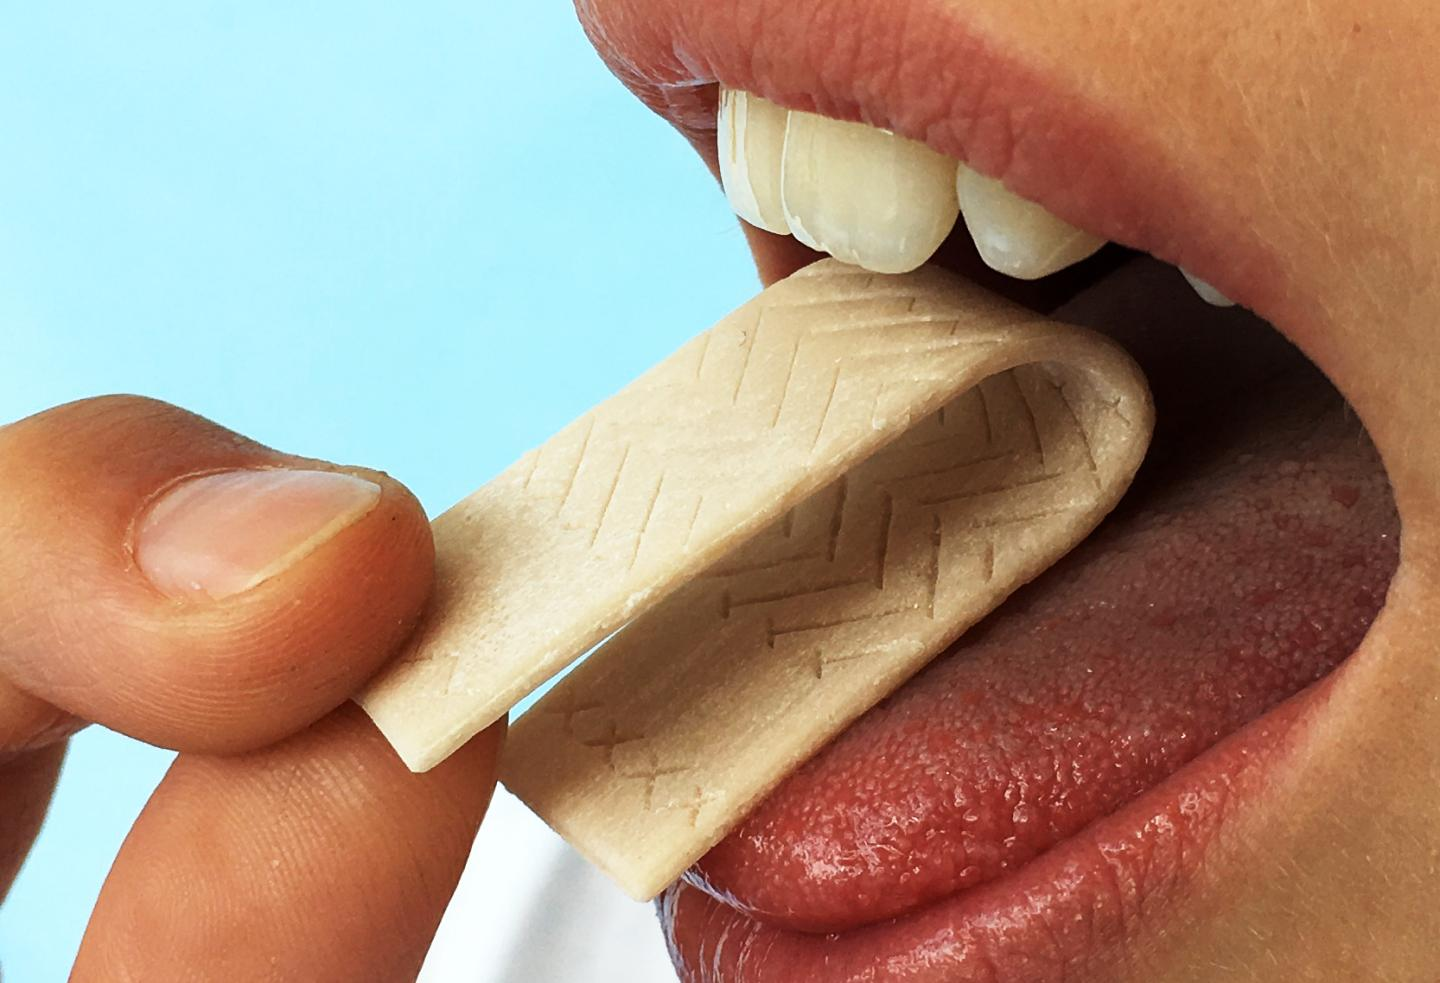 Chewing gum to screen for oral inflammation